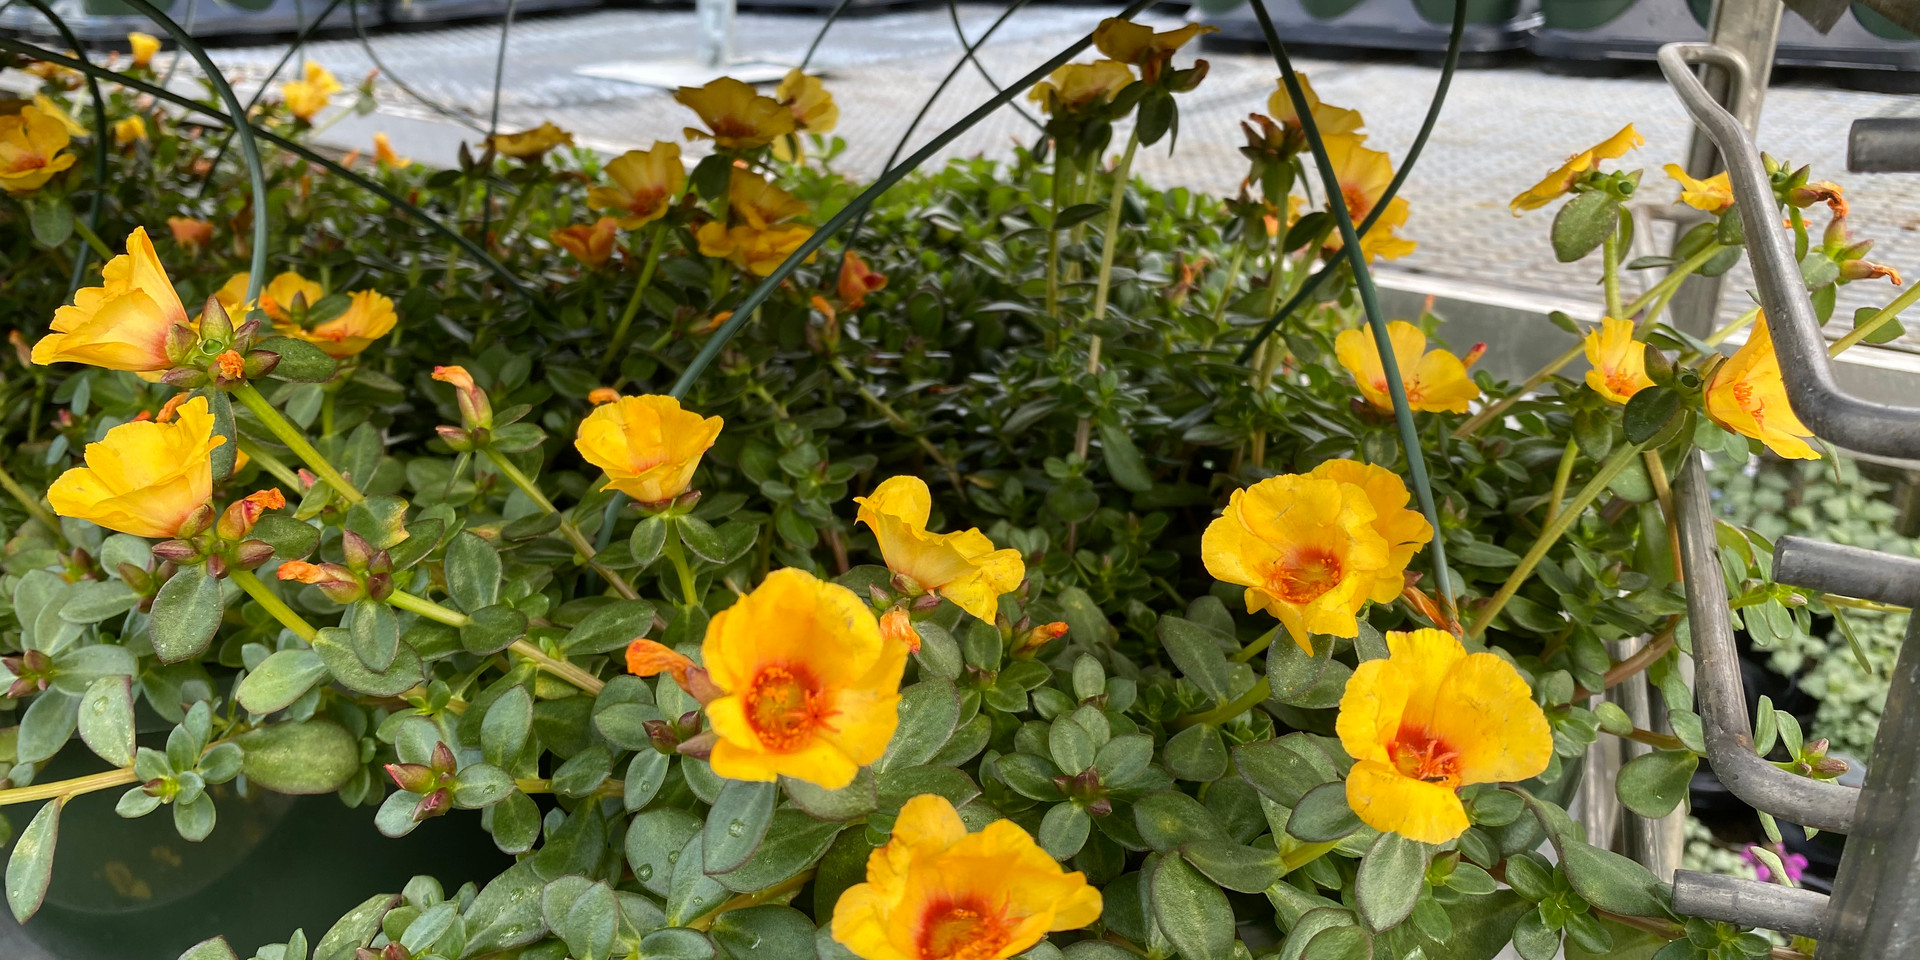 Portulaca in a wide assortment of colors & shapes - full sun, very little water needed - only $8 each!